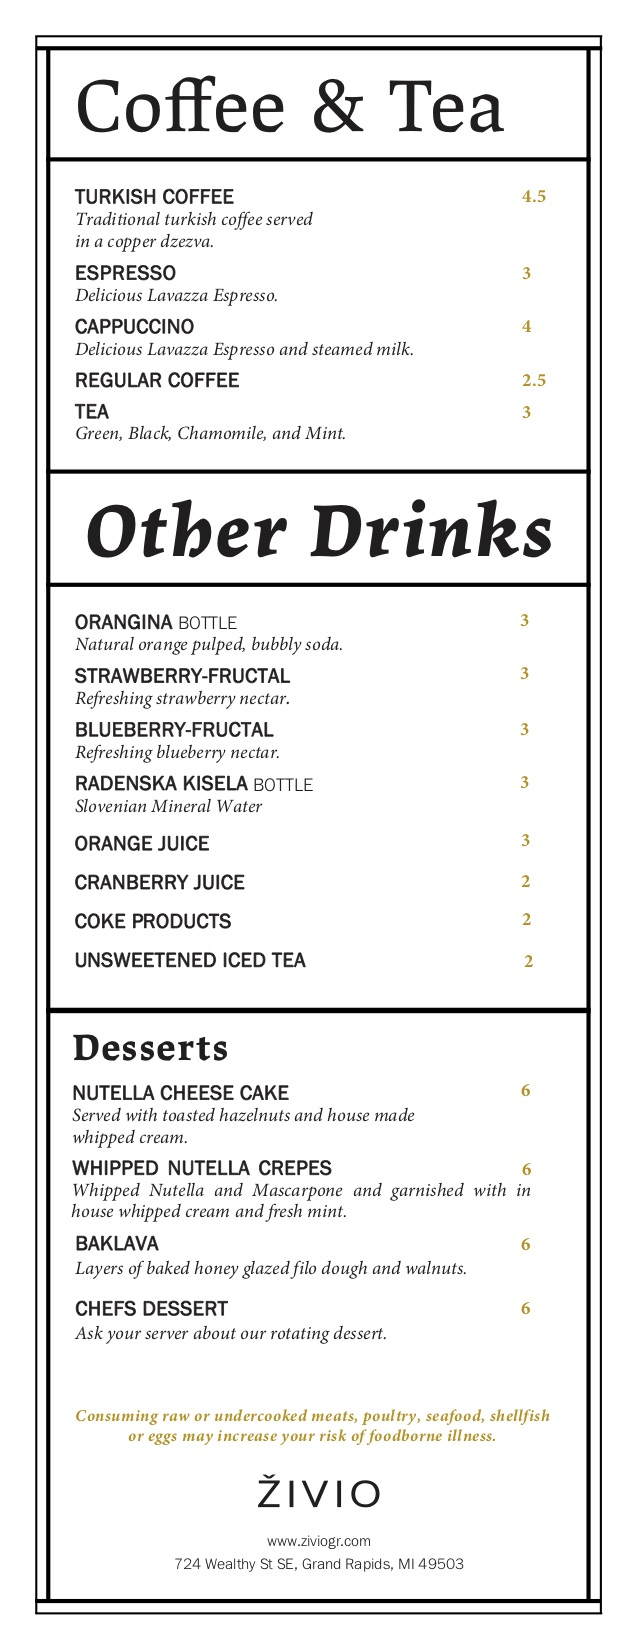 zivio drink menu update (1).jpg